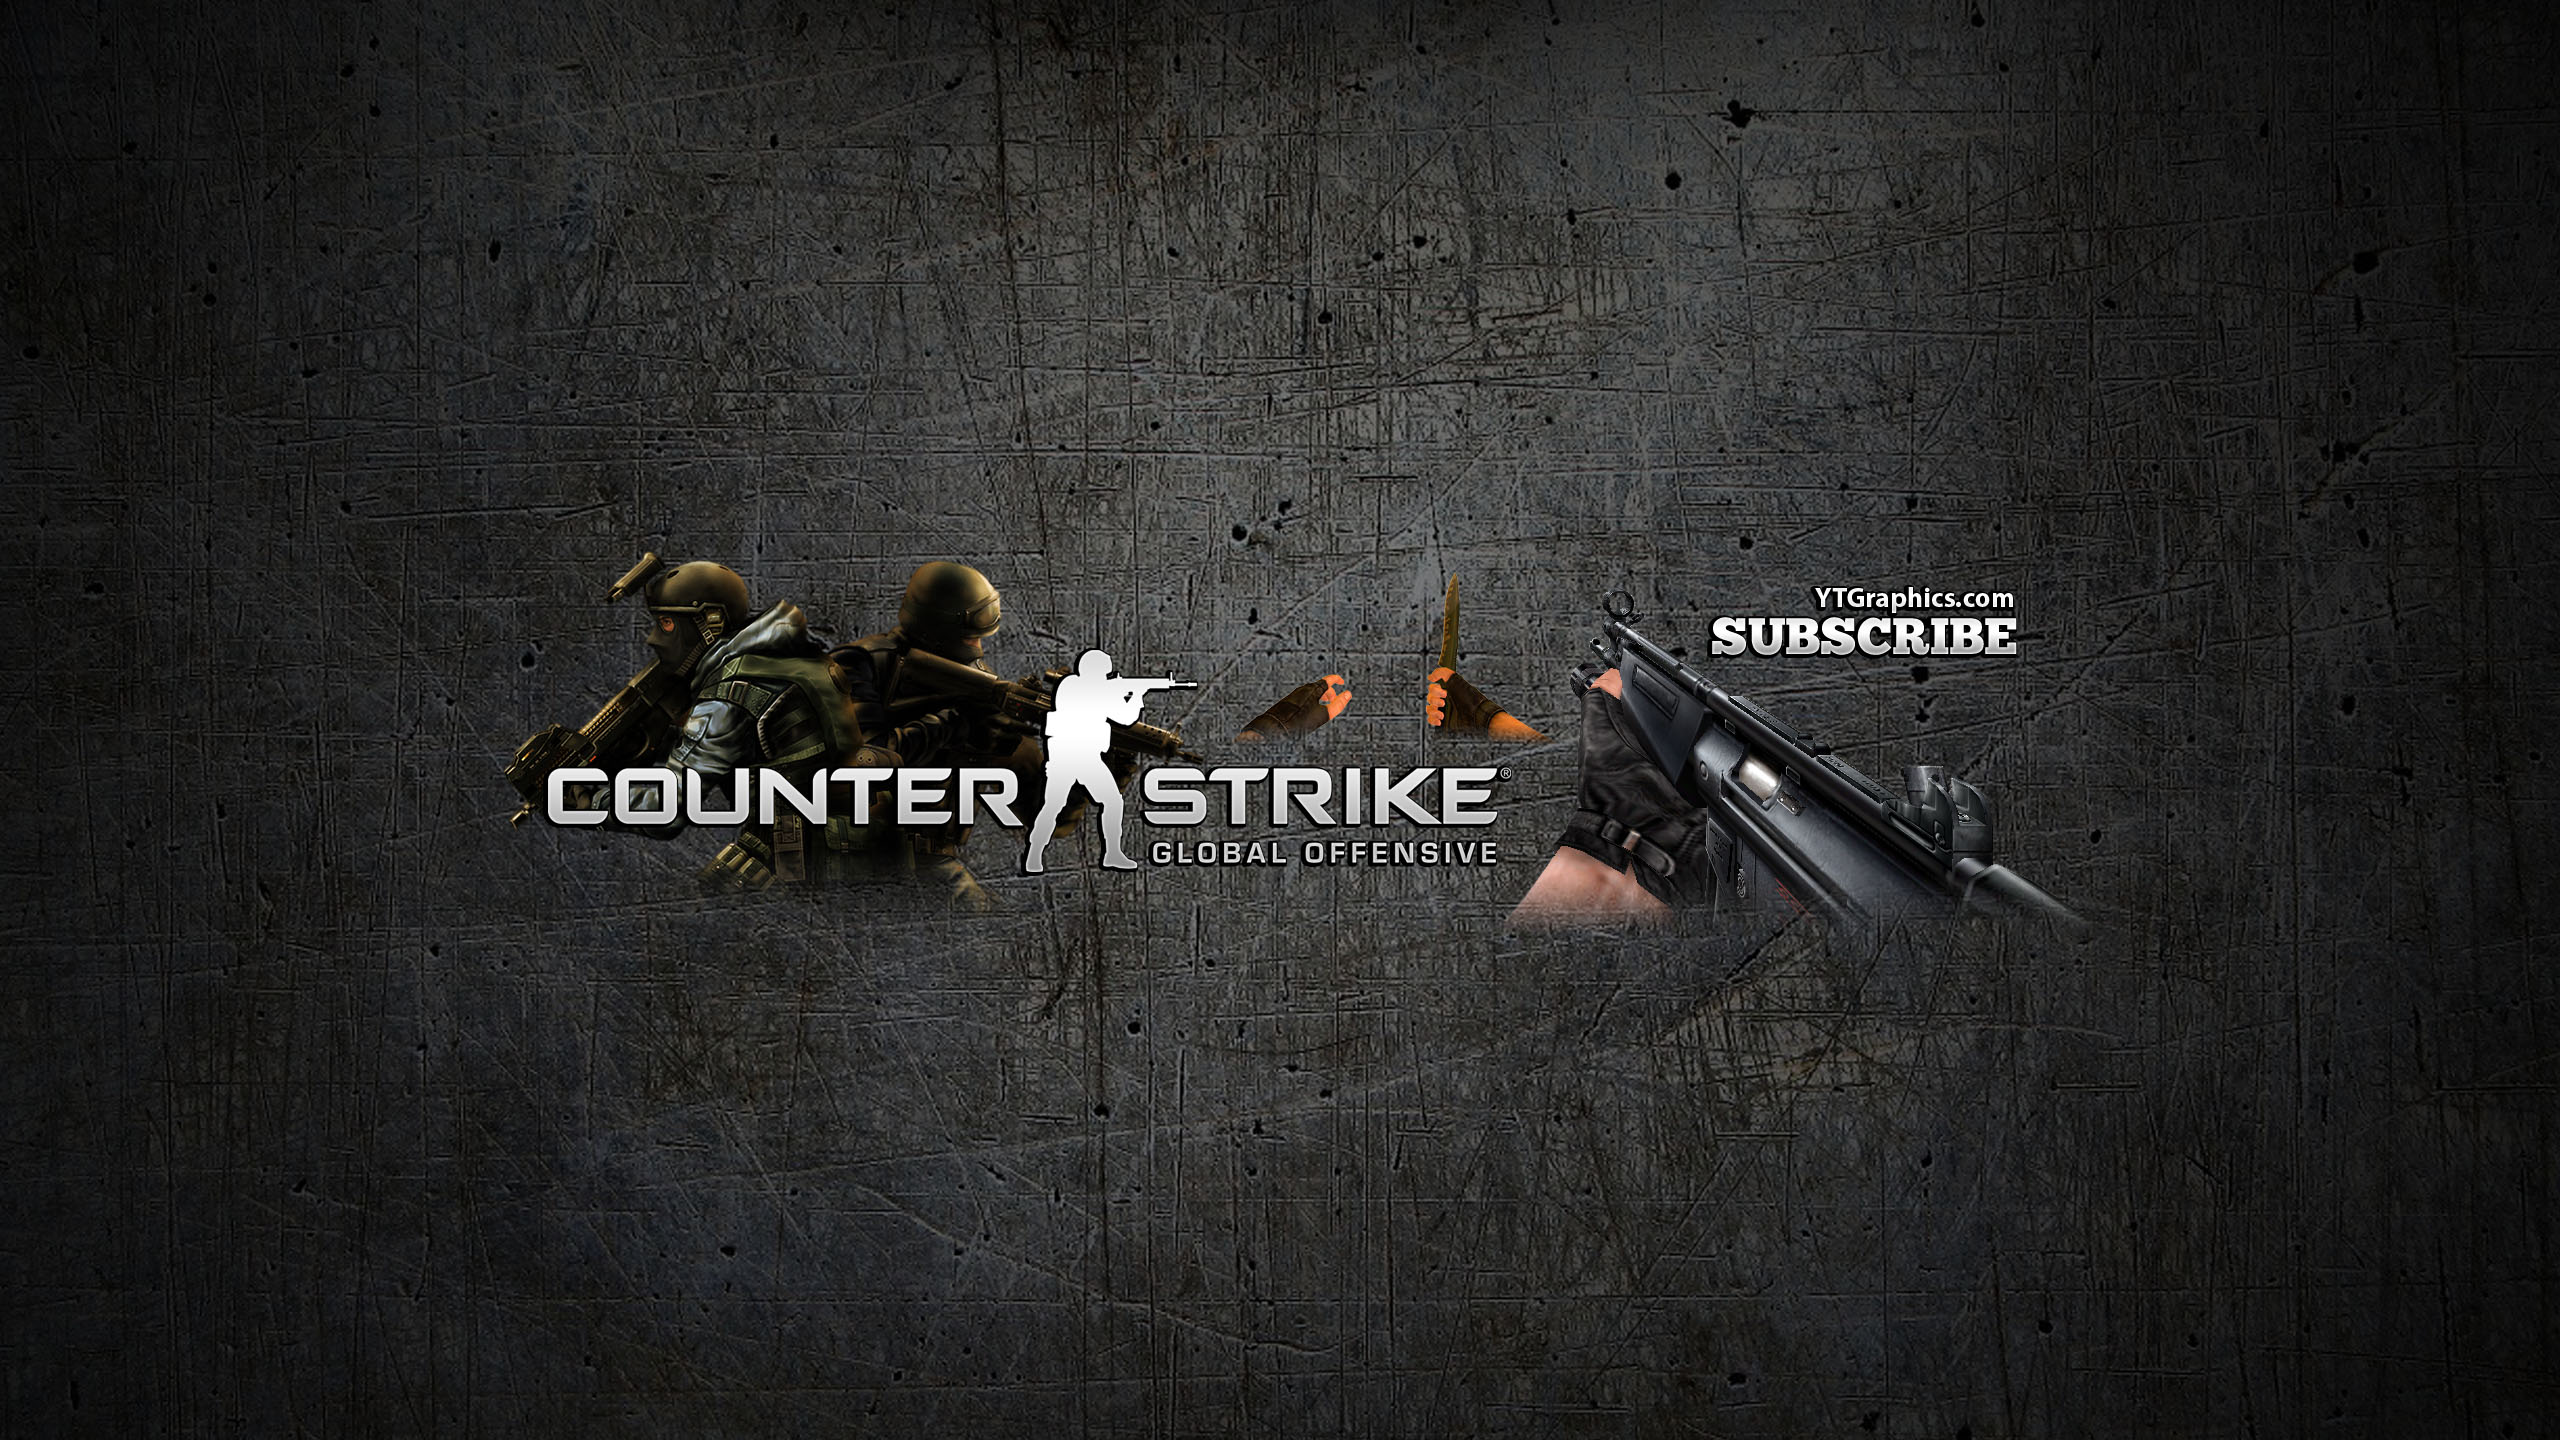 youtube counter strike